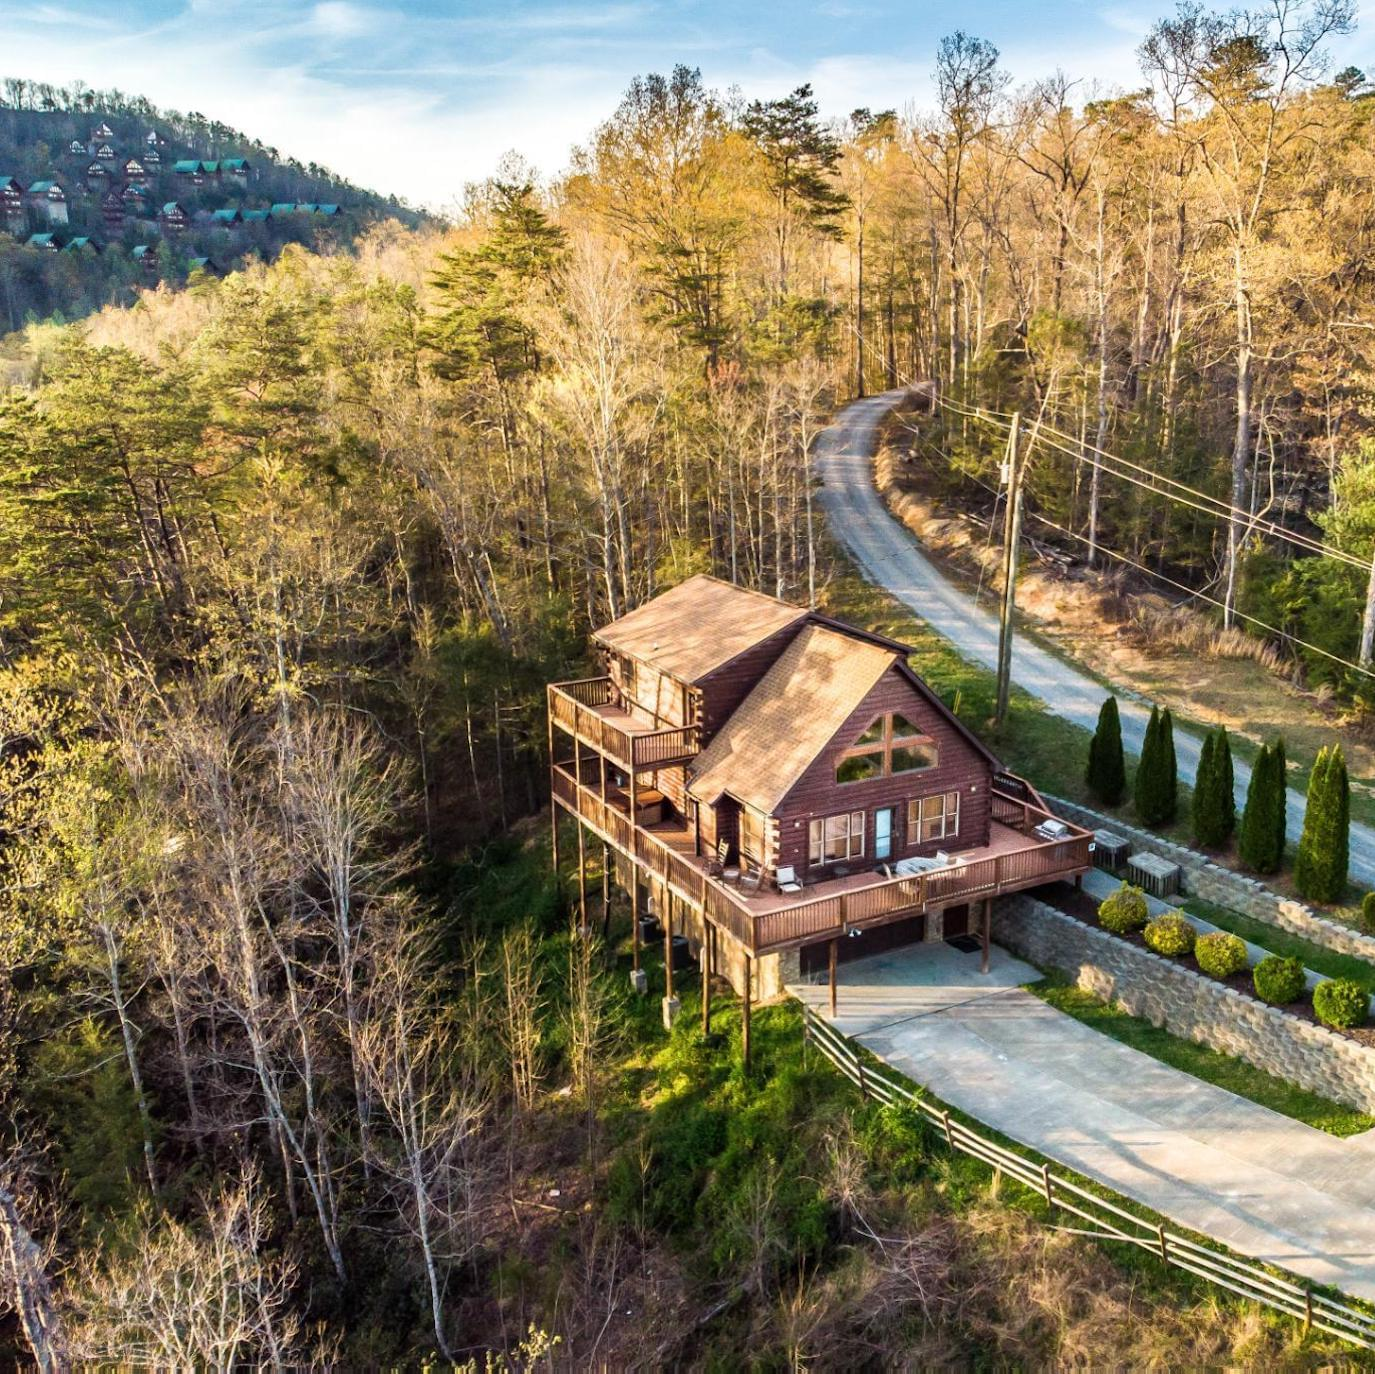 Gatlinburg vacation rental nestled in the mountains